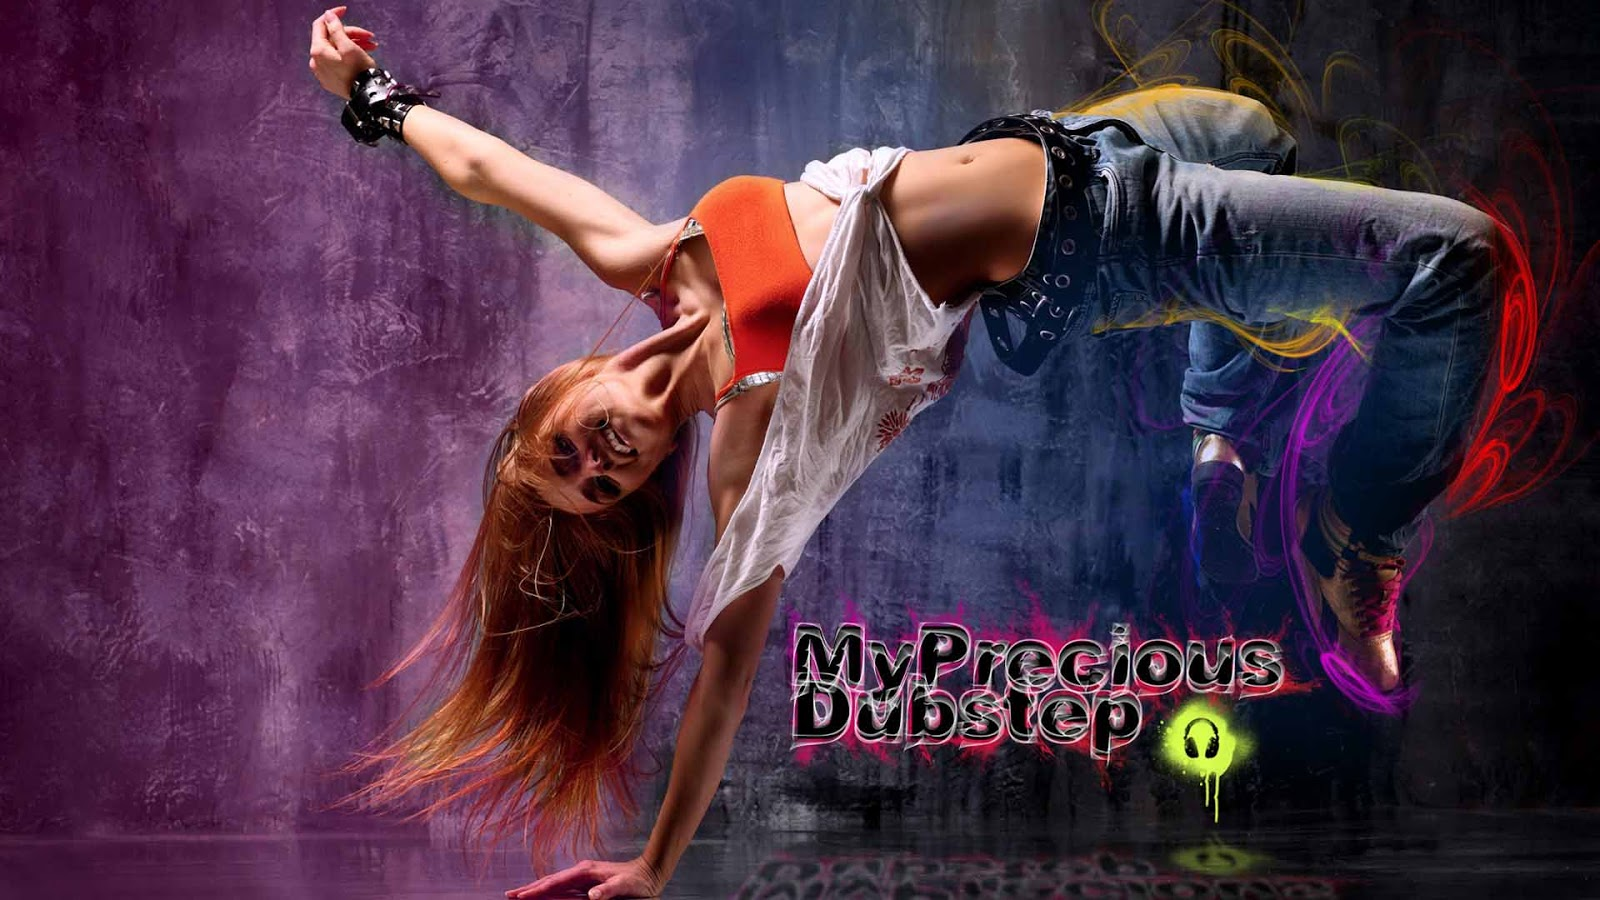 Hot girl dubstep dance music video - 3 7